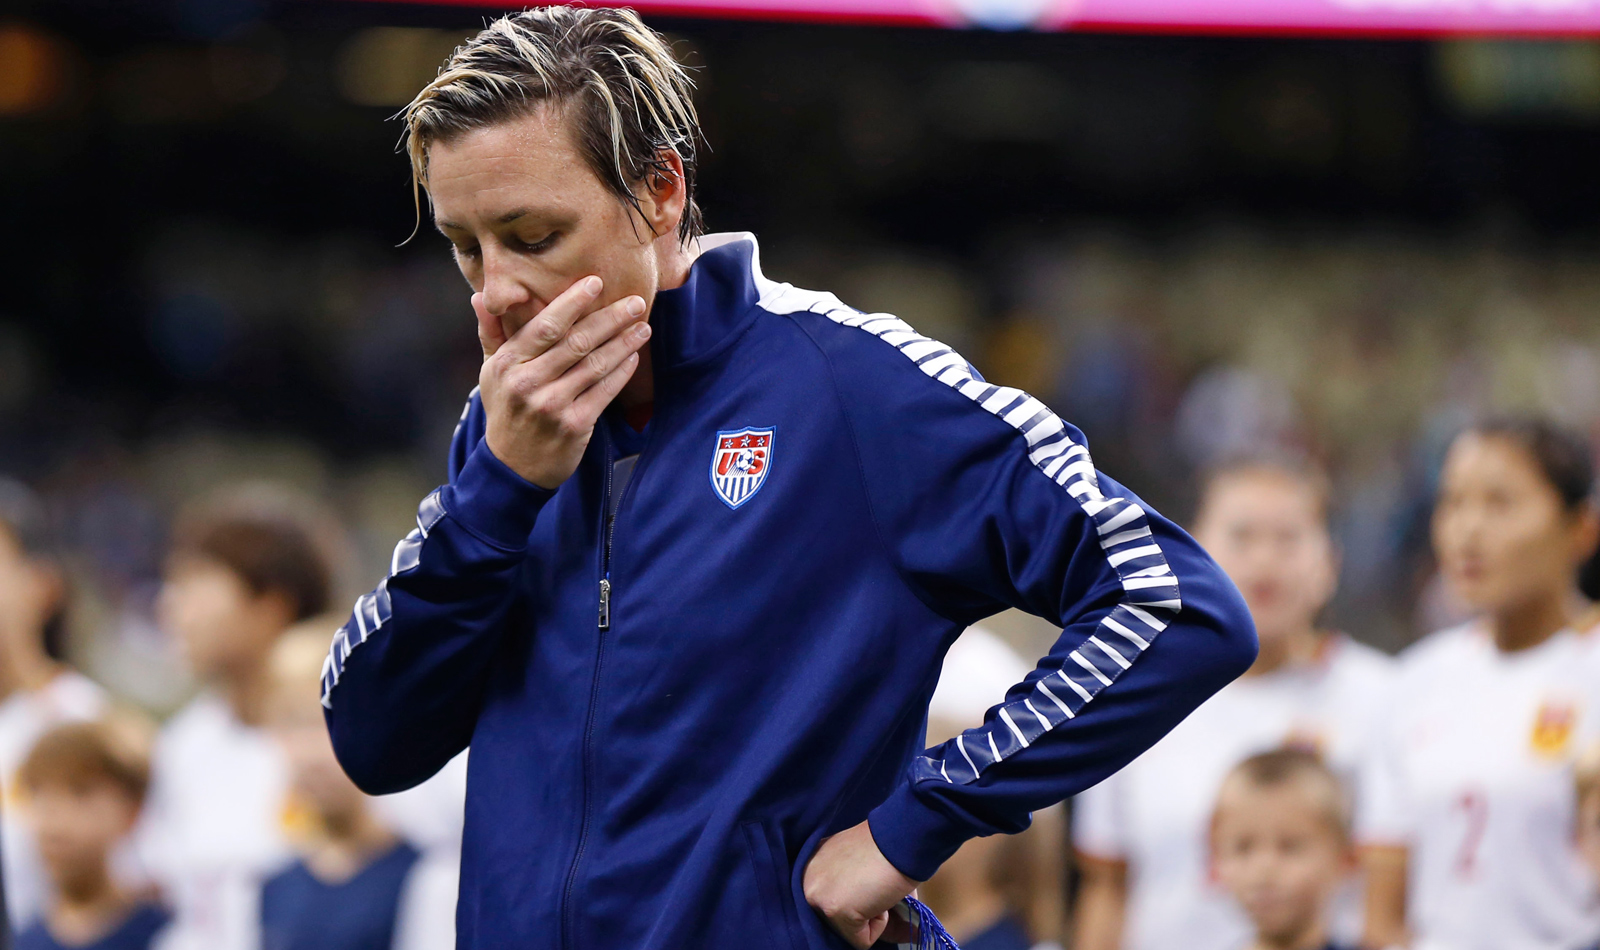 Abby Wambach is introduced in the U.S. lineup for the last time at the Superdome in New Orleans, playing in her final match before retiring. She ends her U.S. career with 255 appeara